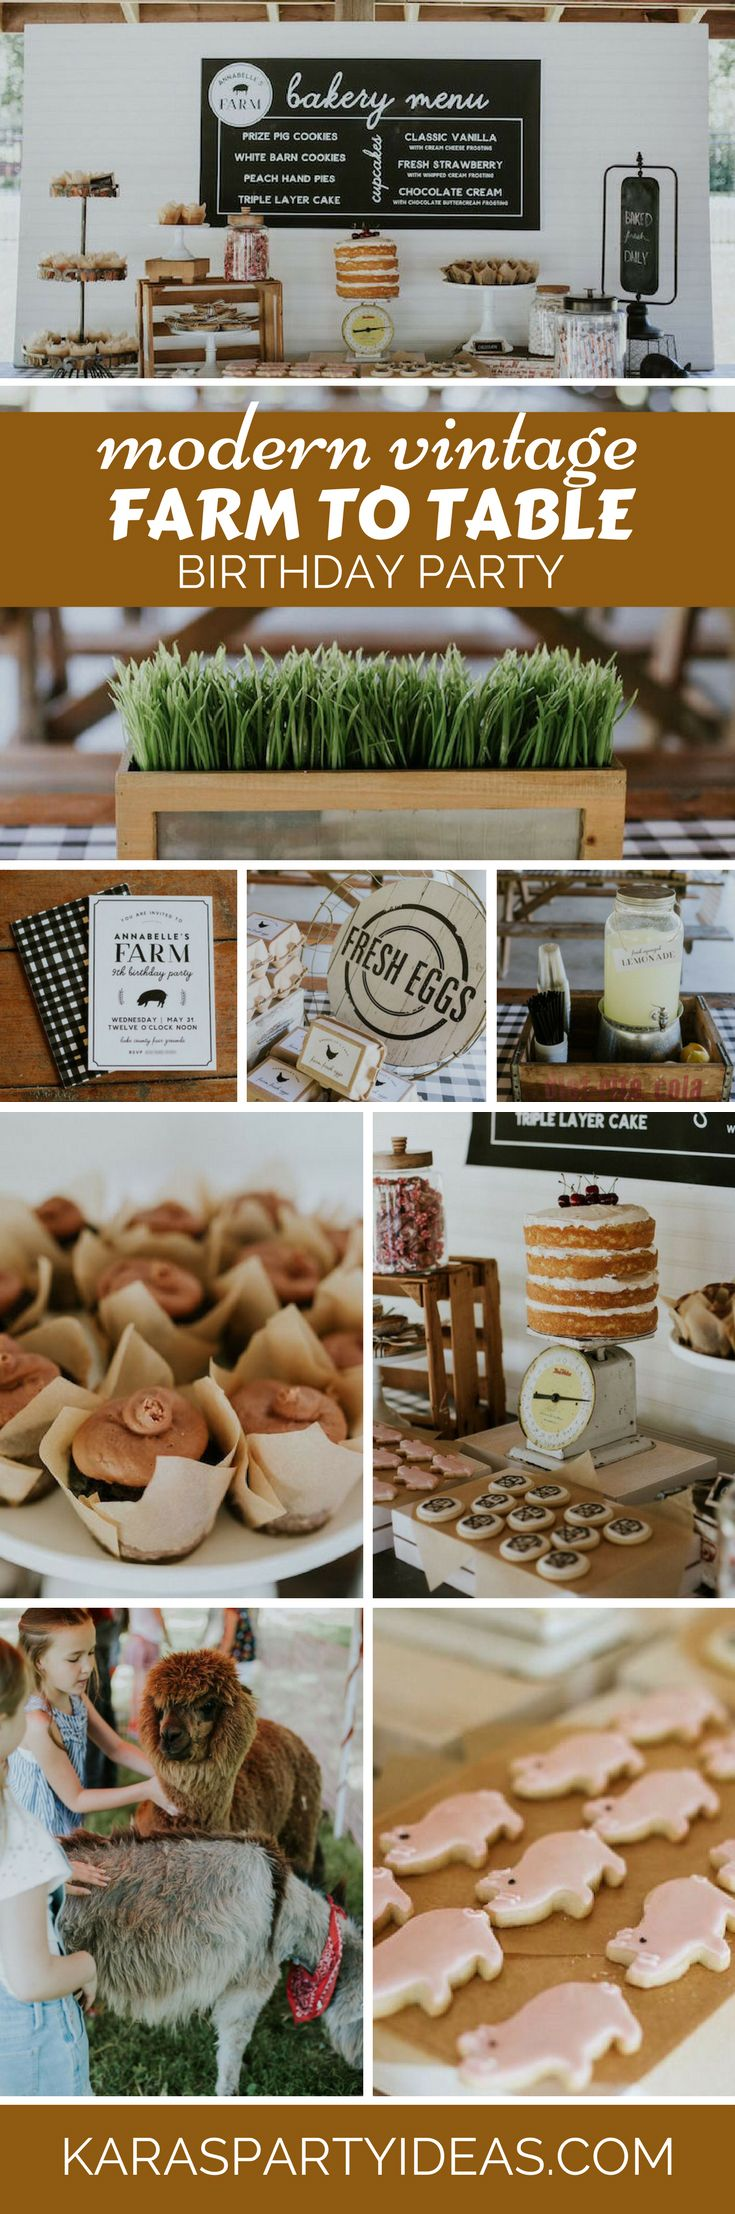 Modern Vintage Farm-to-Table Birthday Party